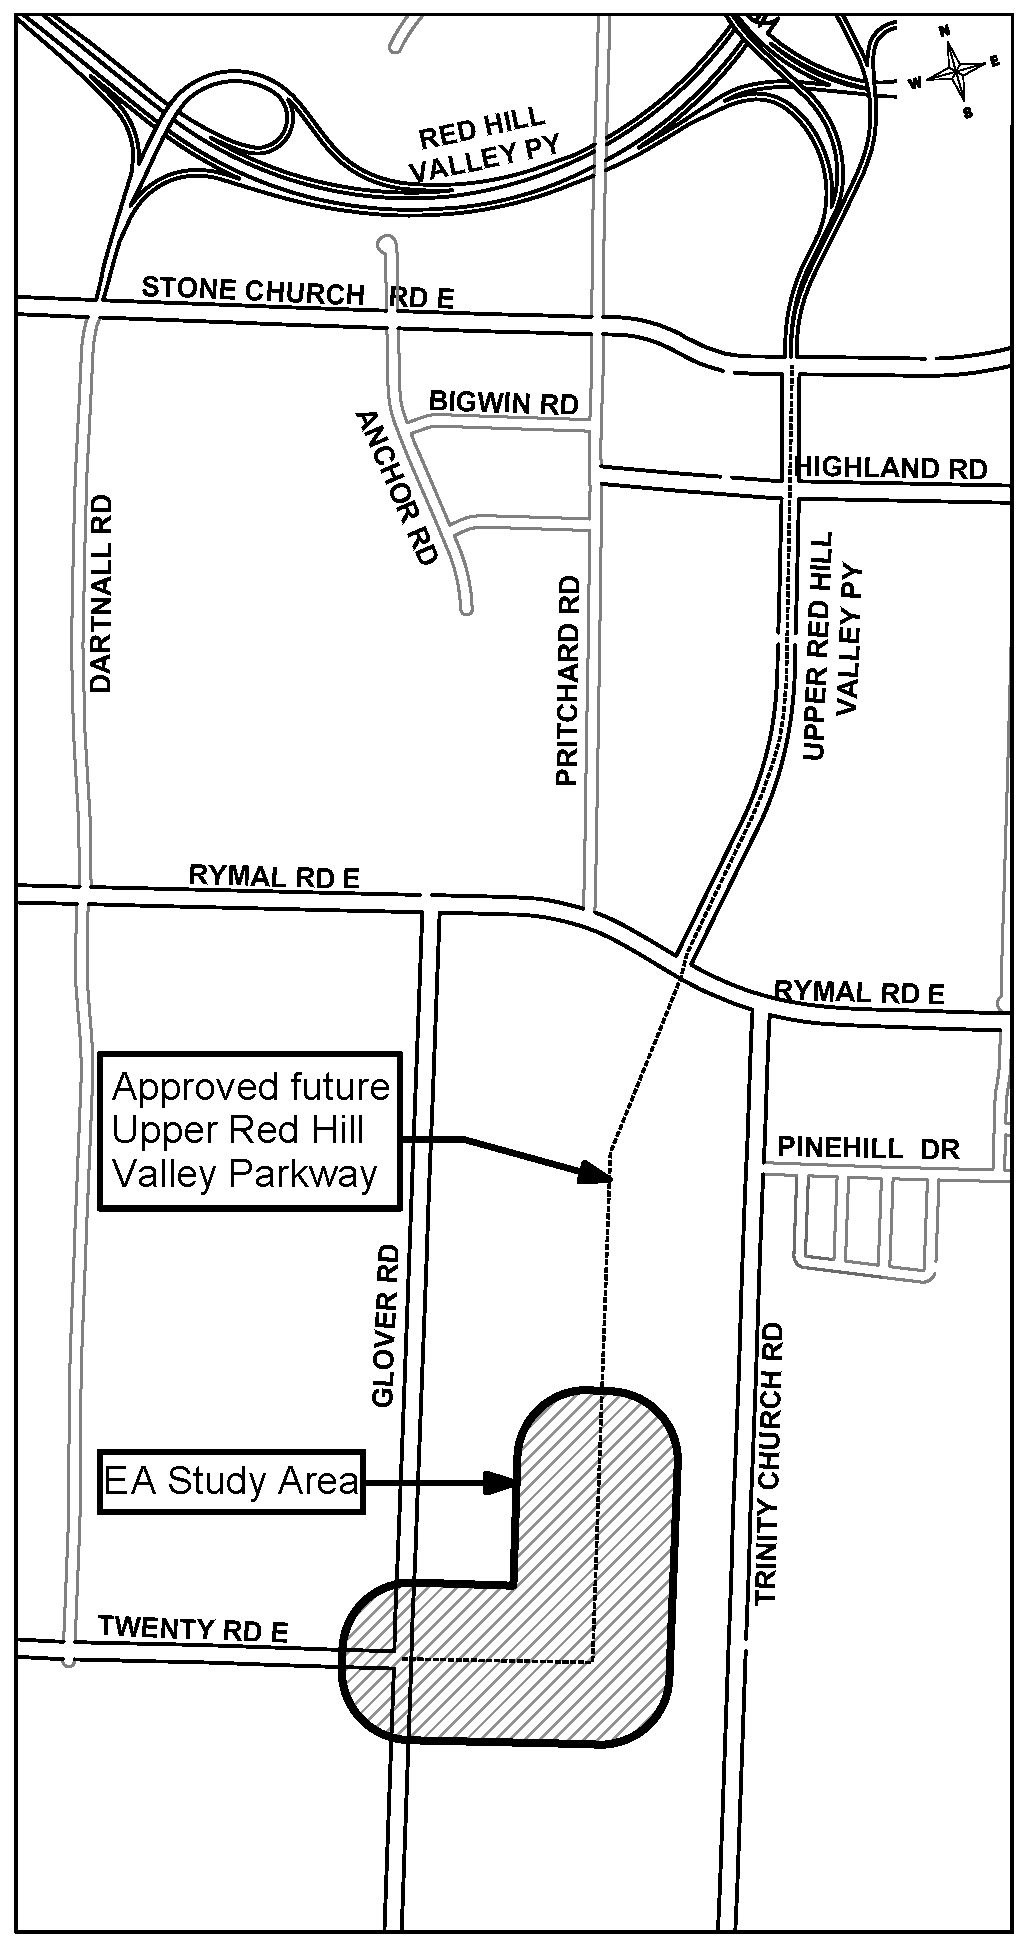 Location map of Twenty Road East and Upper Red Hill Valley Parkway Extensions EA